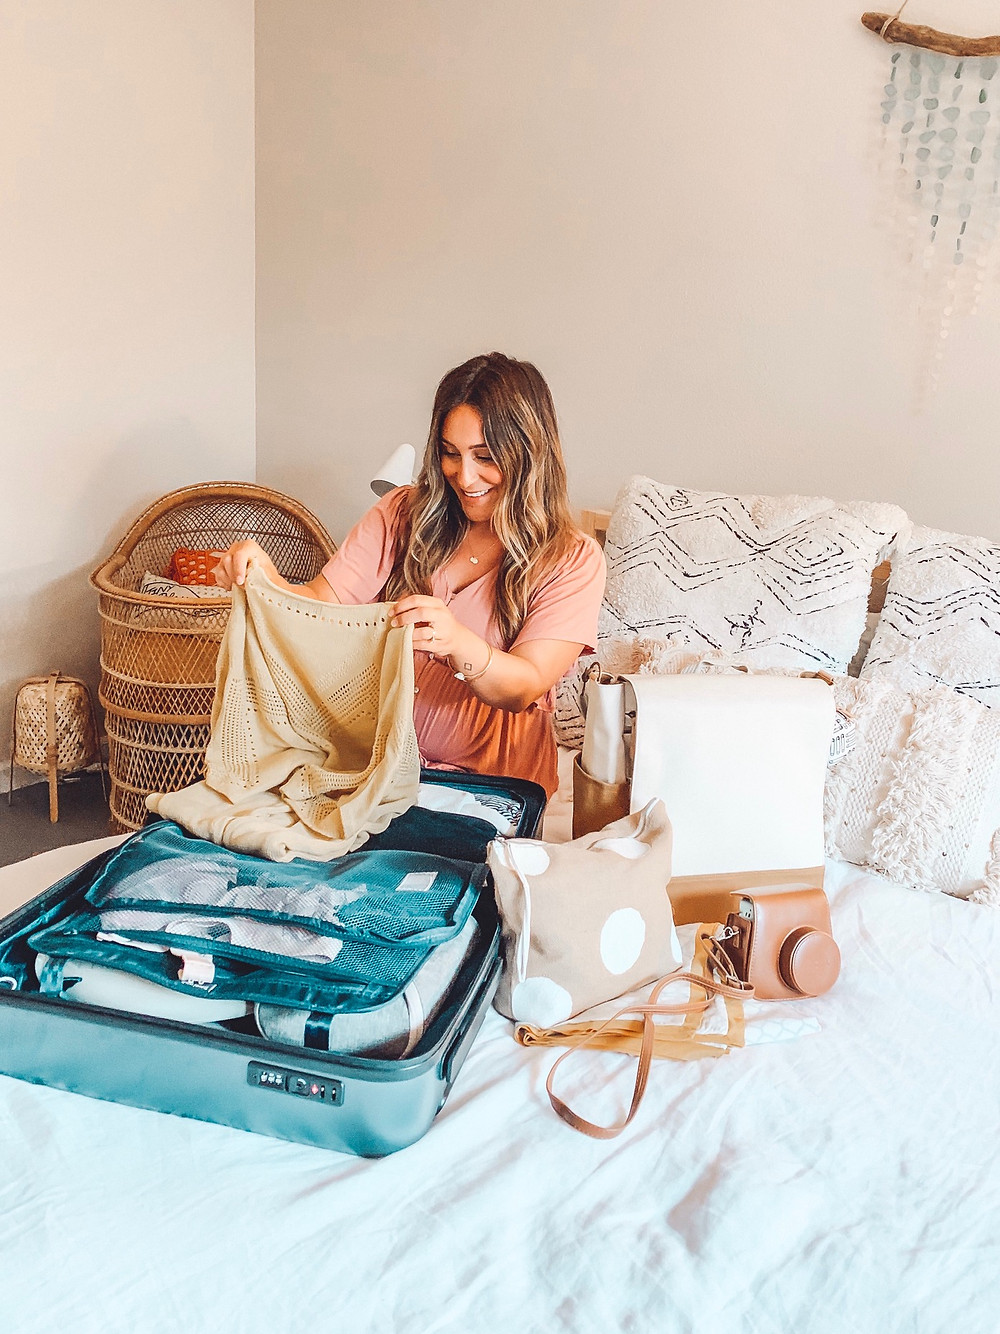 pregnant woman packing a blanket into a suitcase on a bed